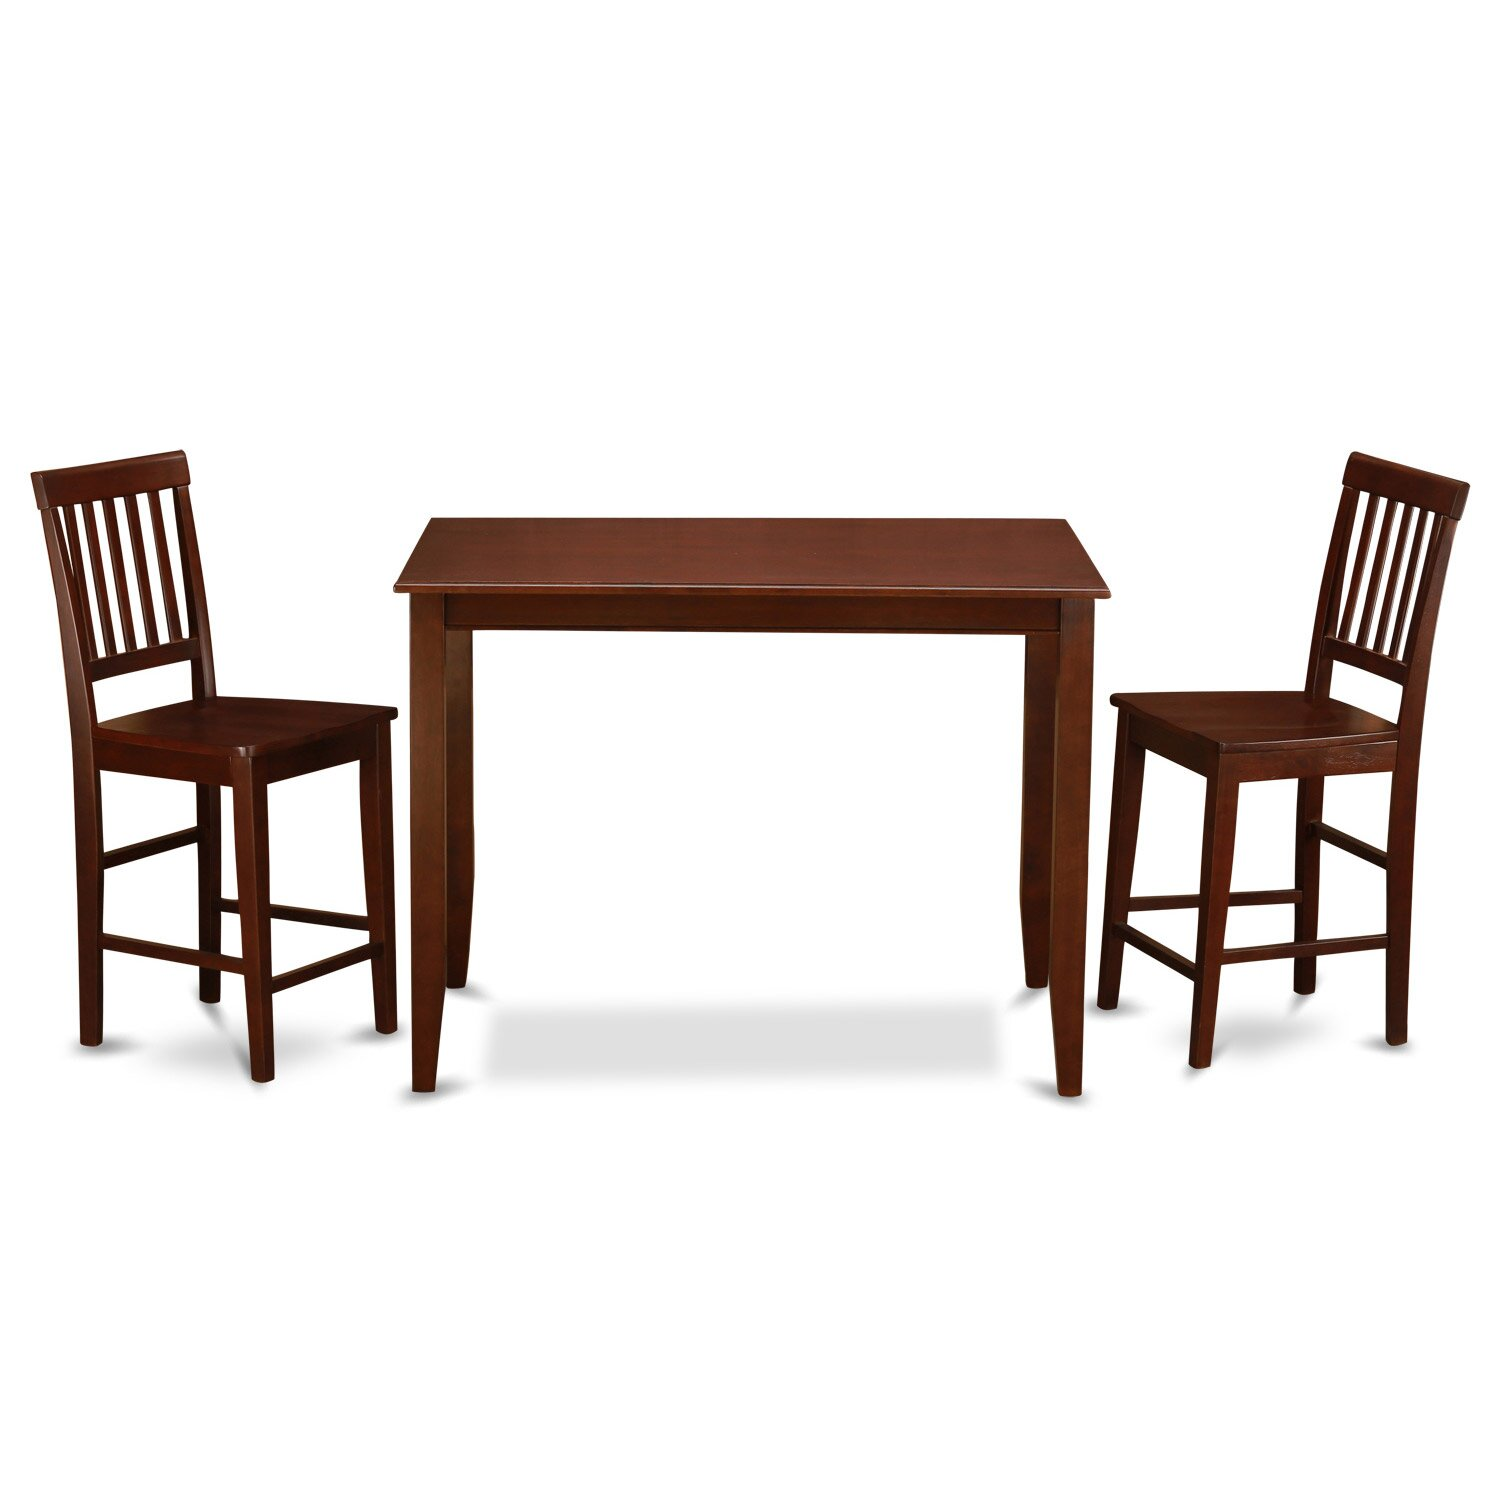 Wooden importers 3 piece dining set wayfair for 3 piece dining room set